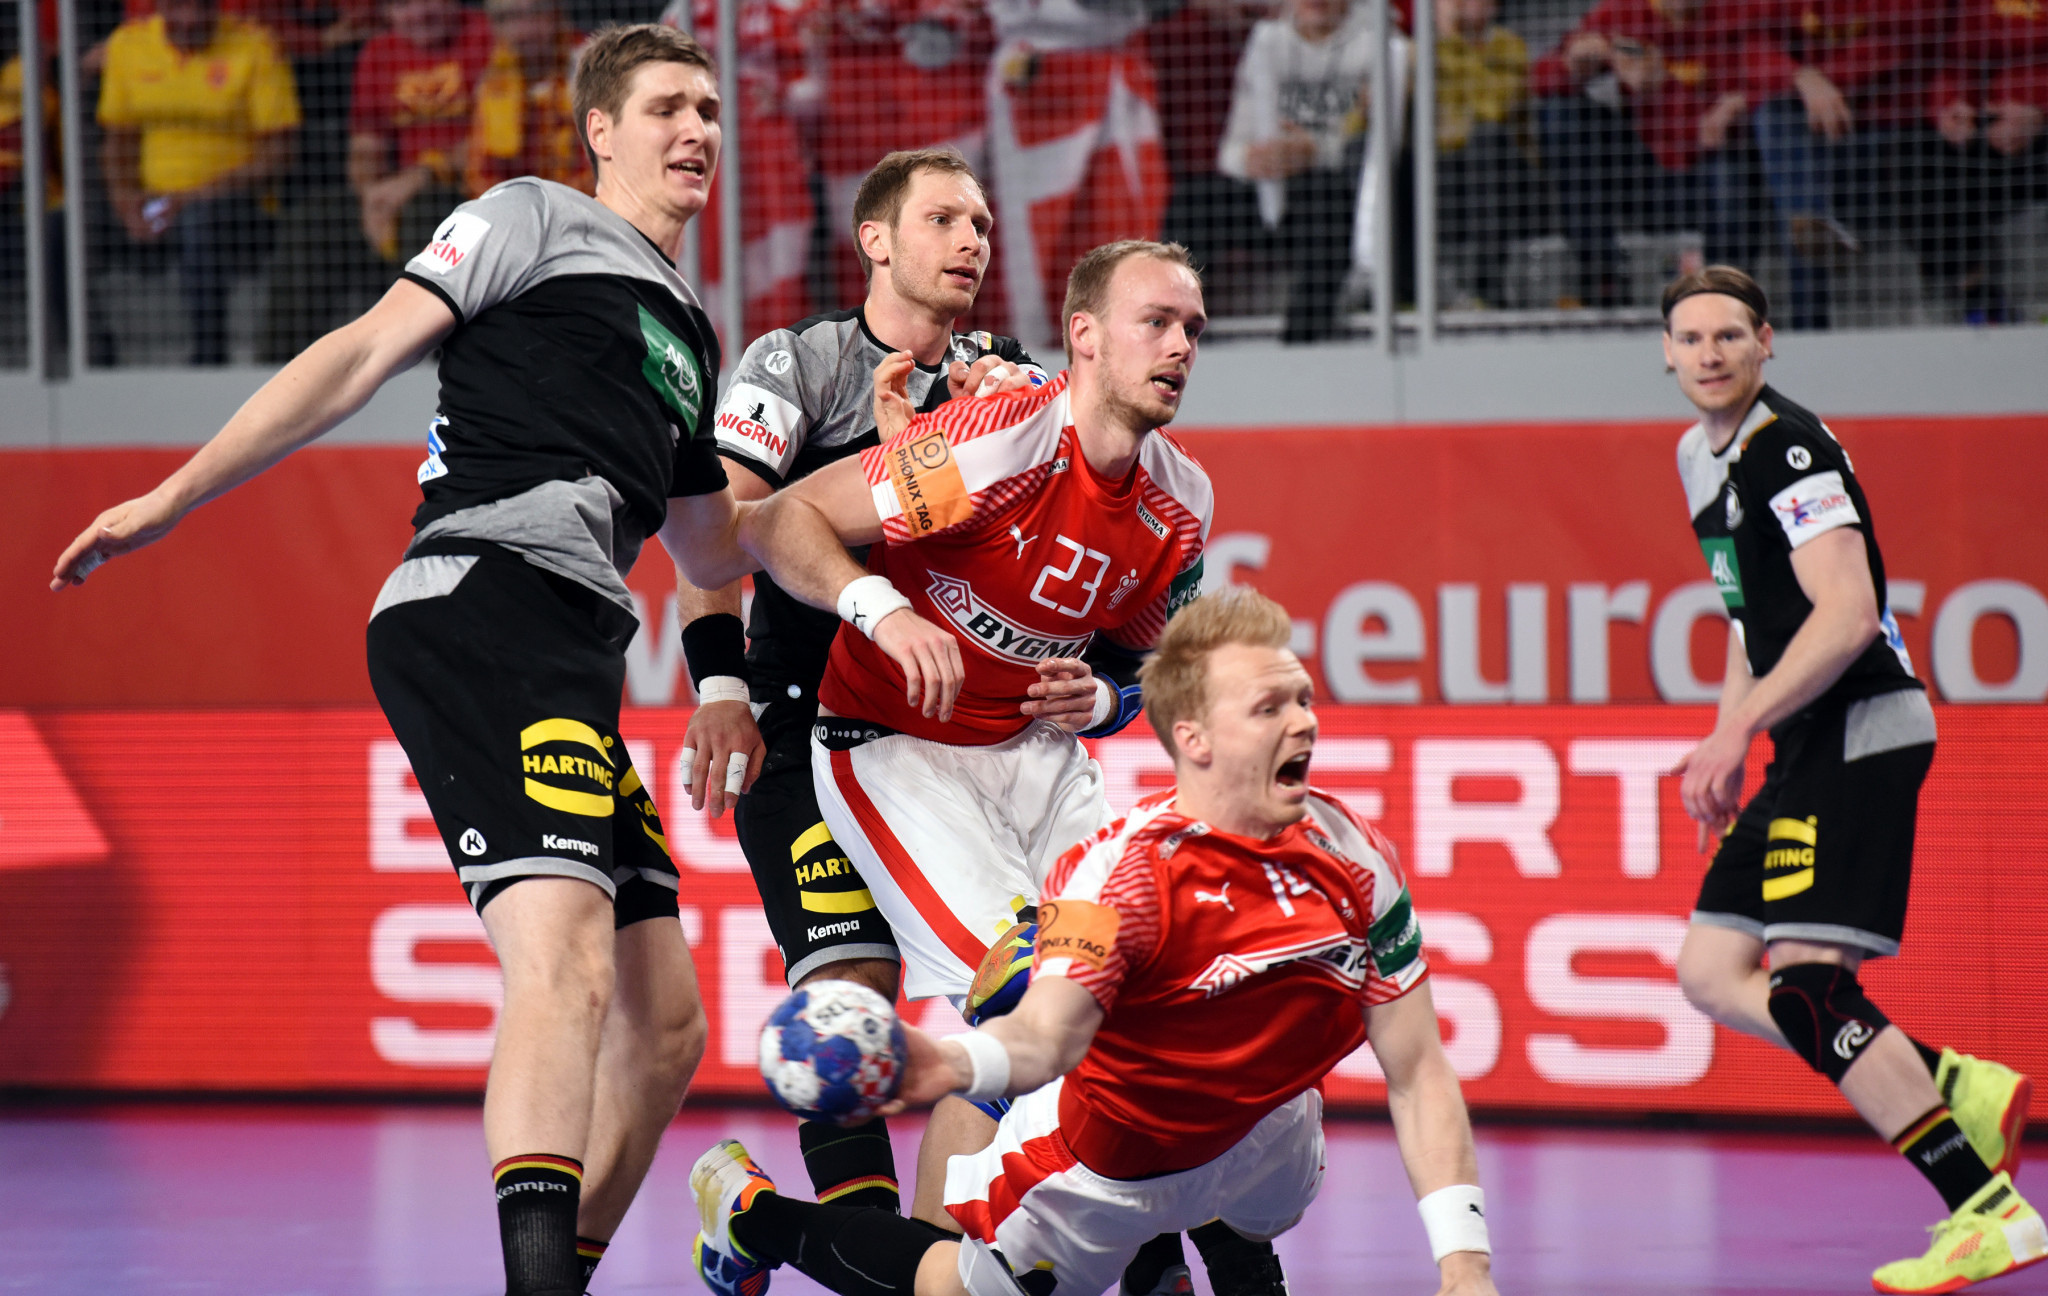 Holders Germany lose key match at European Men's Handball Championship